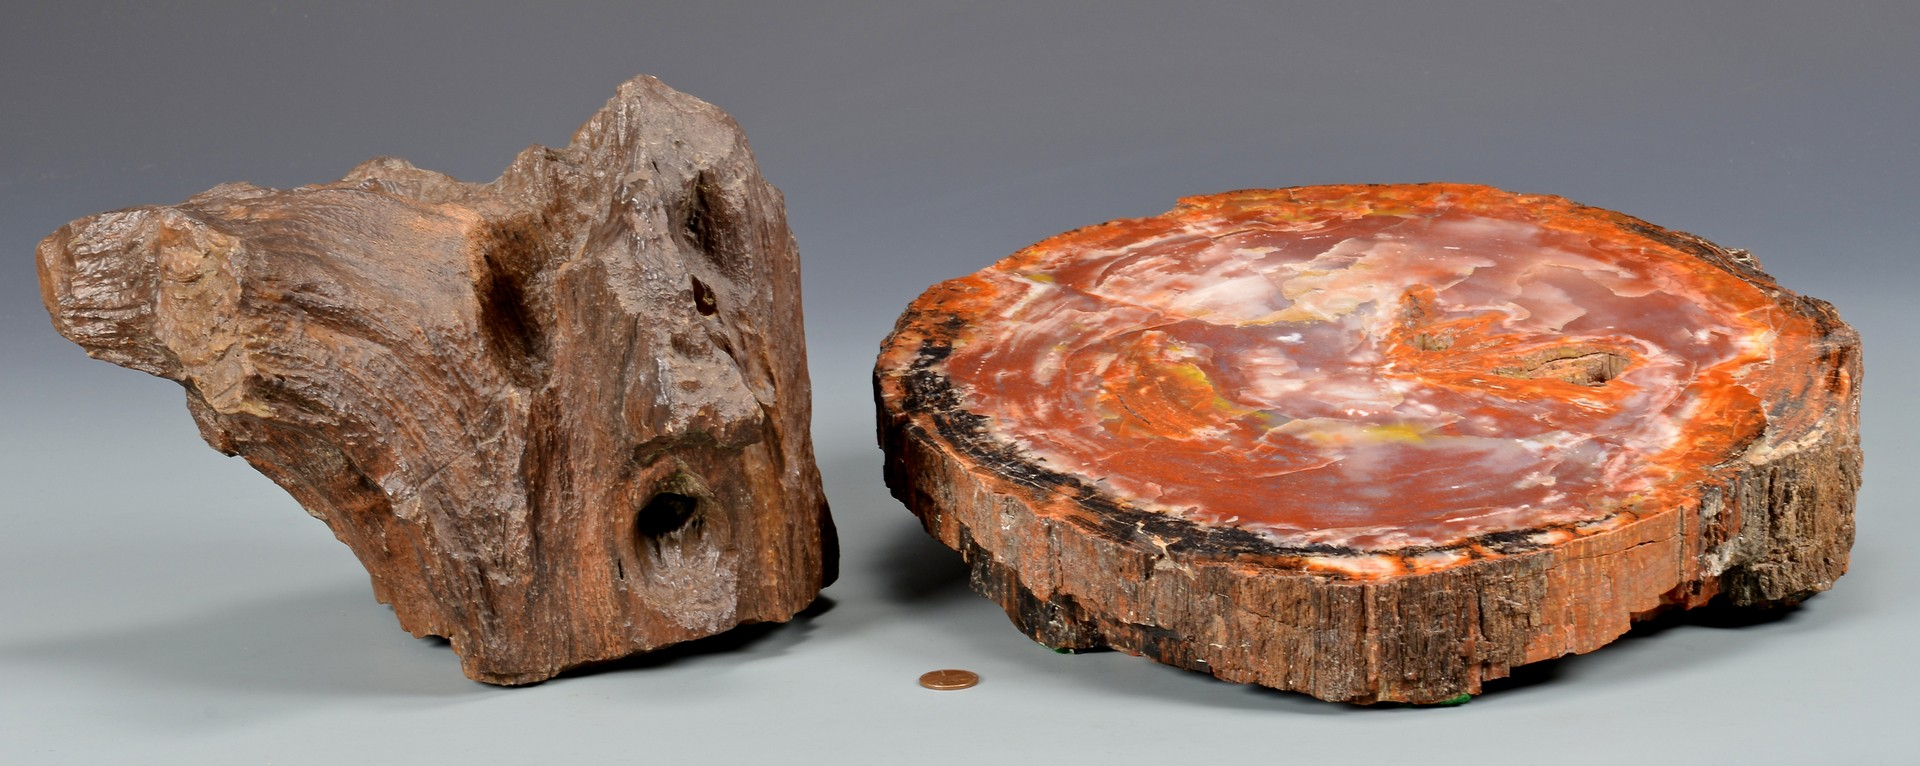 Lot 864: 2 Petrified Wood Pcs, Including Agatized Cross Sec